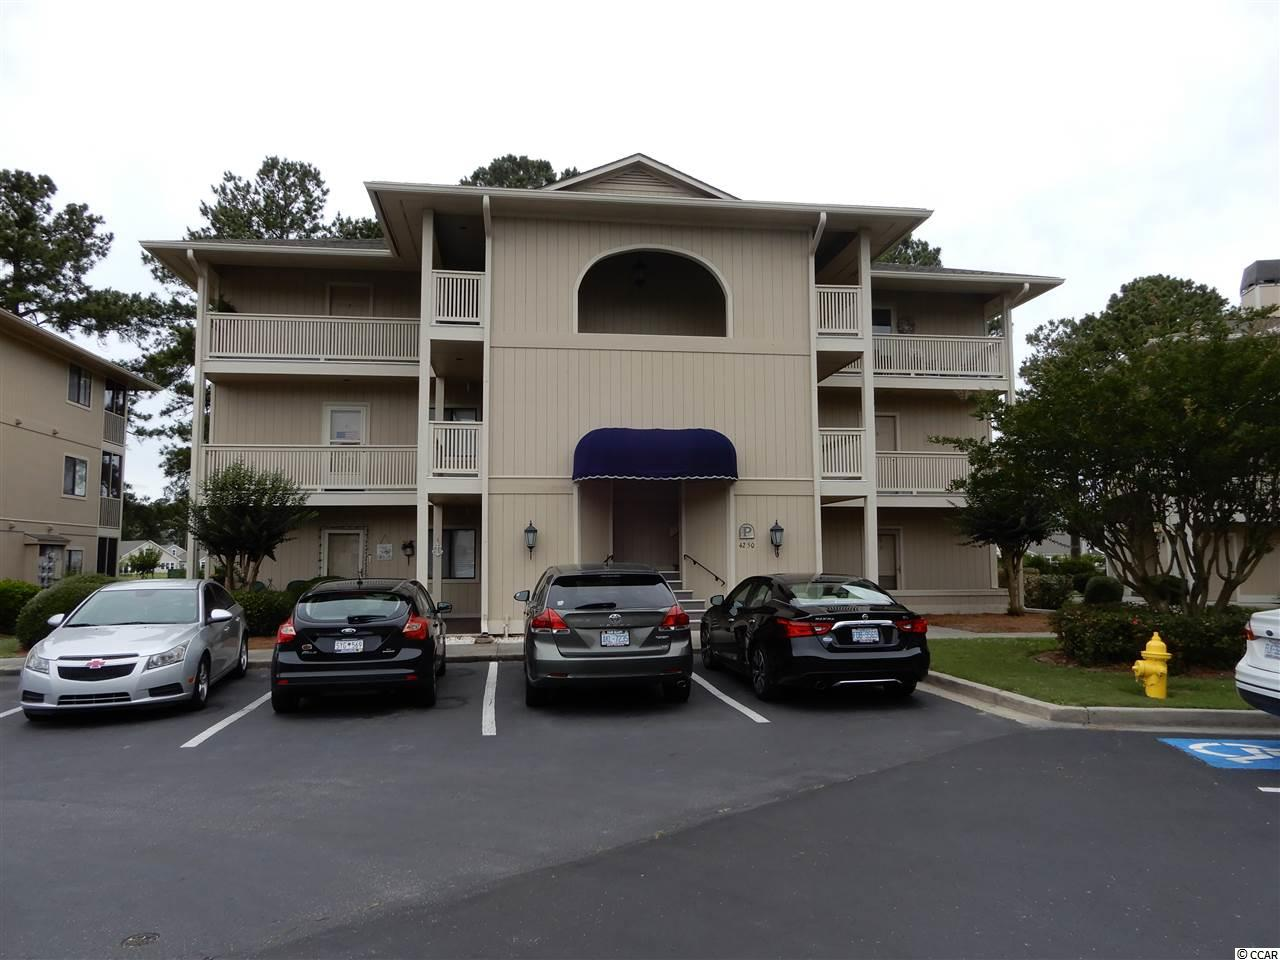 Cypress Bay in Little River, enjoy this cute and cozy two bedroom and two bath condo in the heart of Little River.  Top floor unit with vaulted ceilings and views of trees and pond.  Seller has updated floors through out, vanities, toilets, mirrors, wood floors, carpet.  Furnished and nicely decorated.  Close to all golfing, restaurants, shopping and the beach.